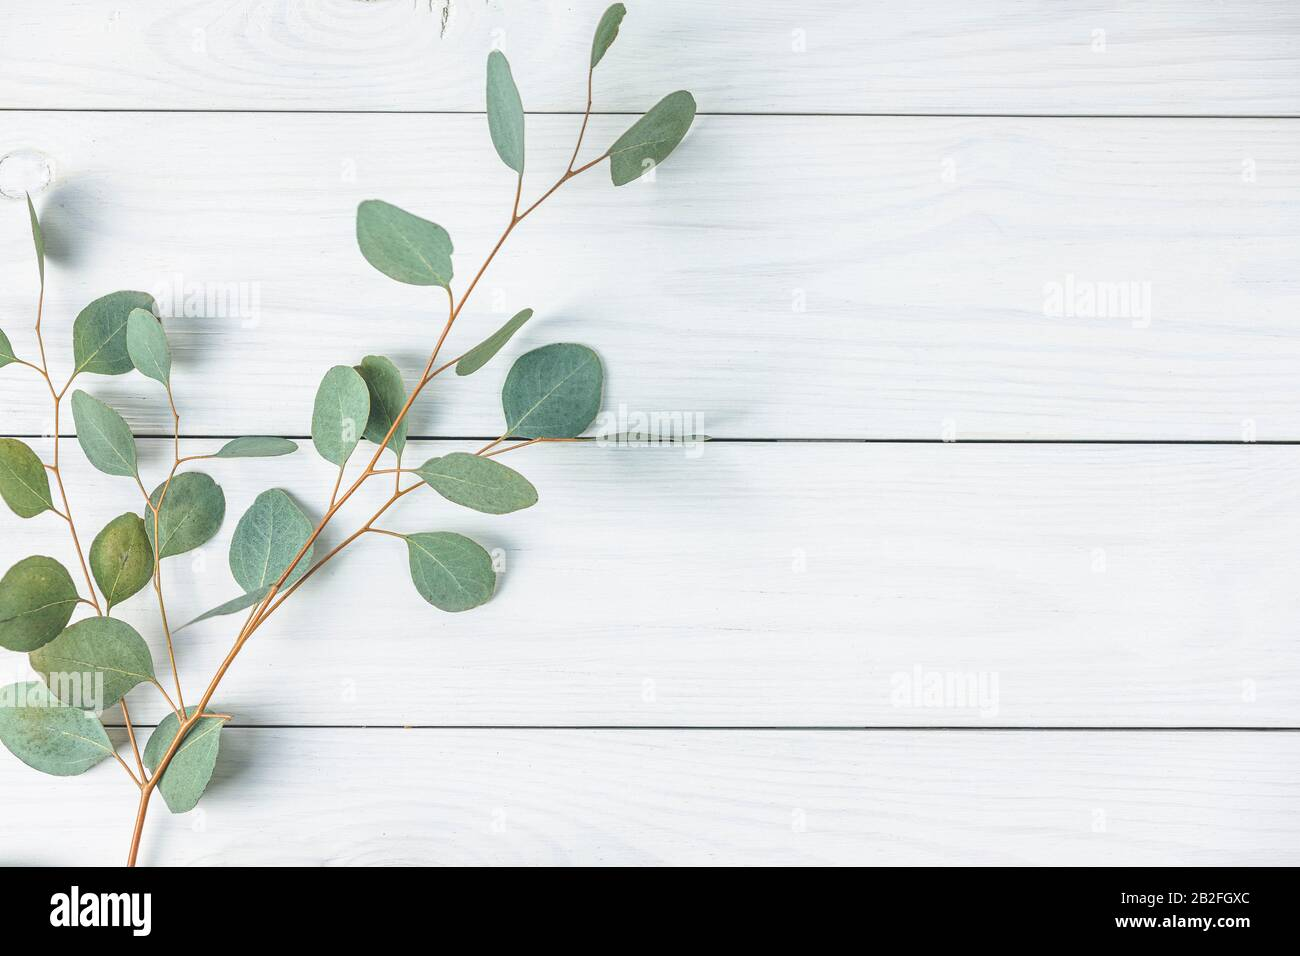 eucalyptus leaves on white wooden background frame made of eucalyptus branches flat lay top view copy space 2B2FGXC